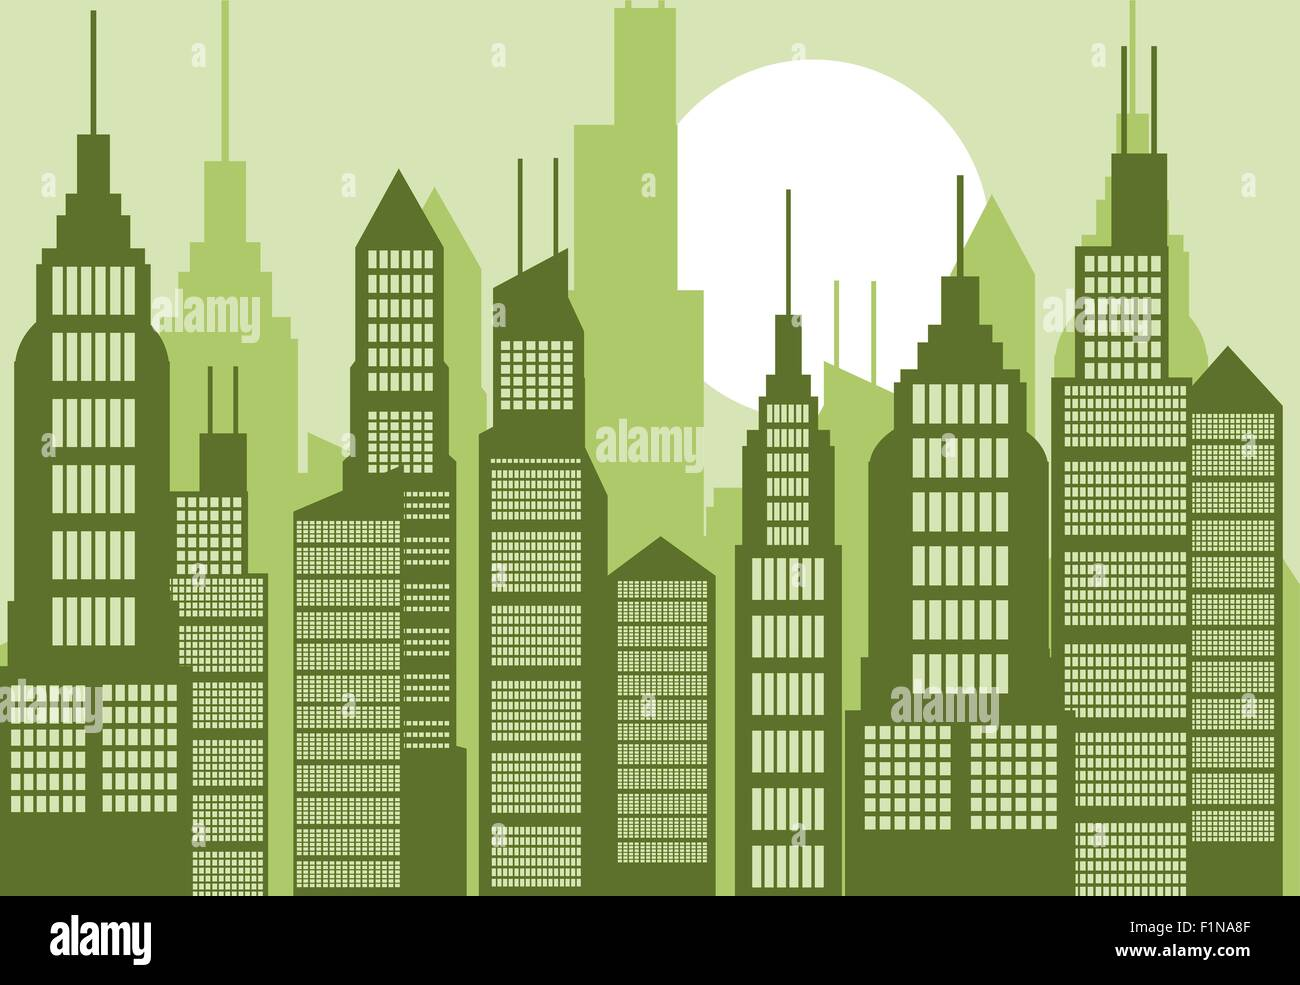 cartoon abstract city illustration with many buildings and stock